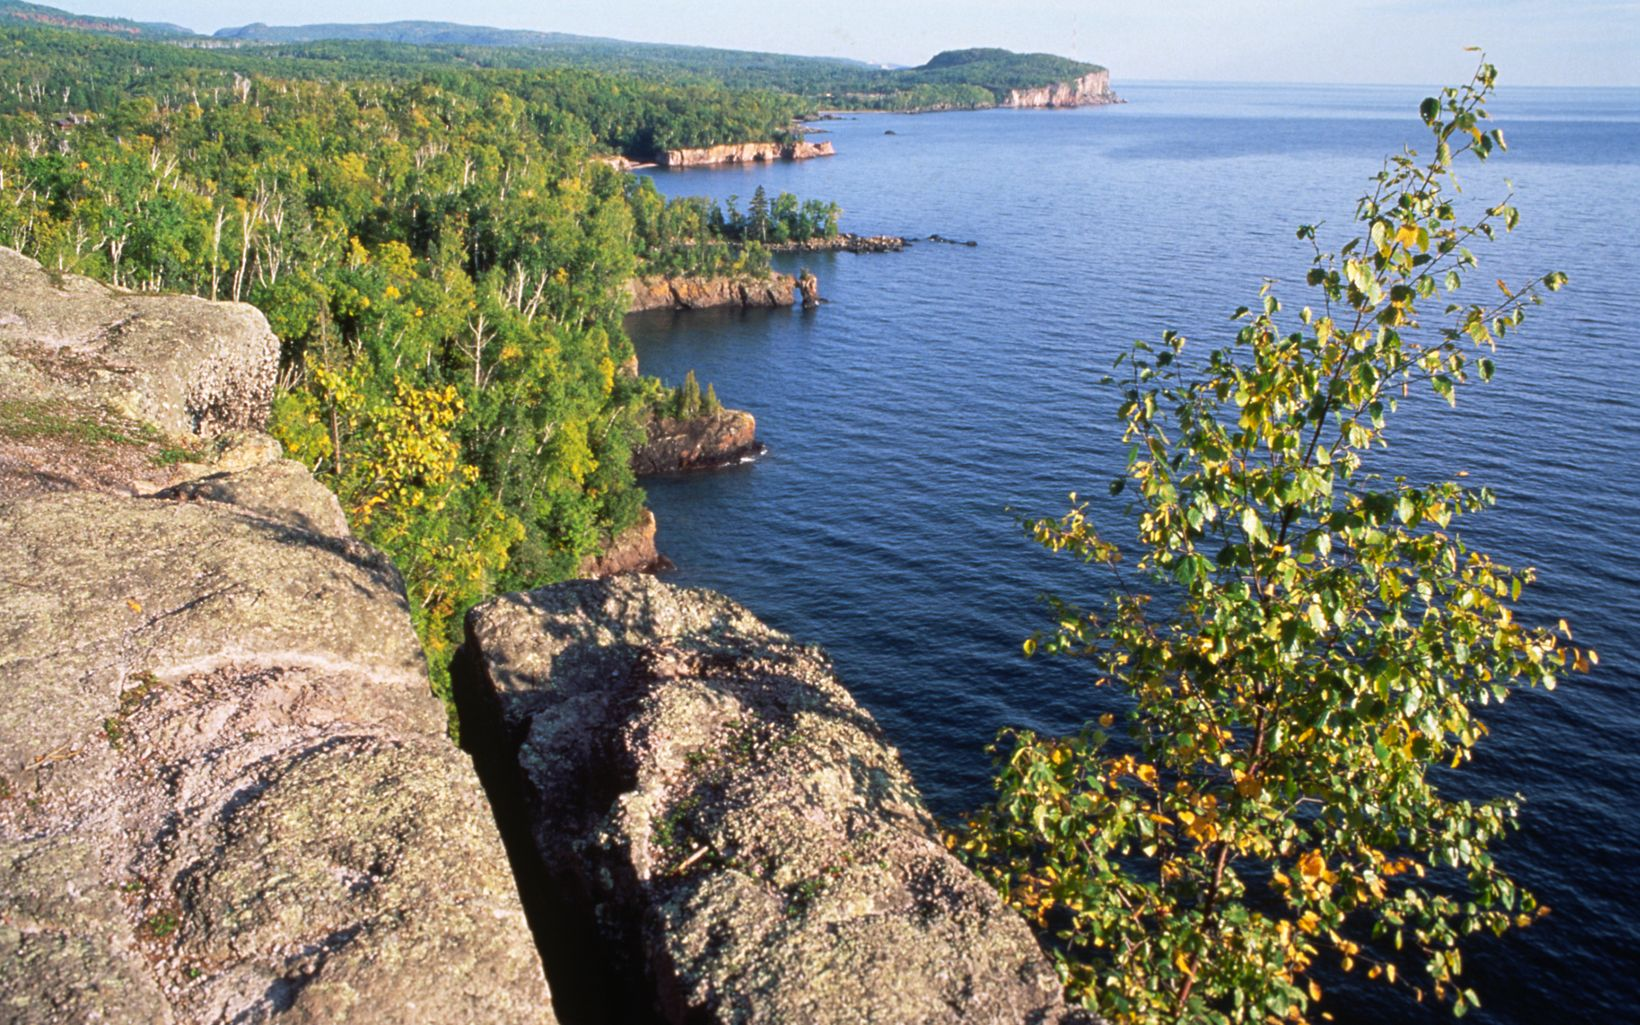 A green forest stretches along the shore of Lake Superior below a rocky outcrop.